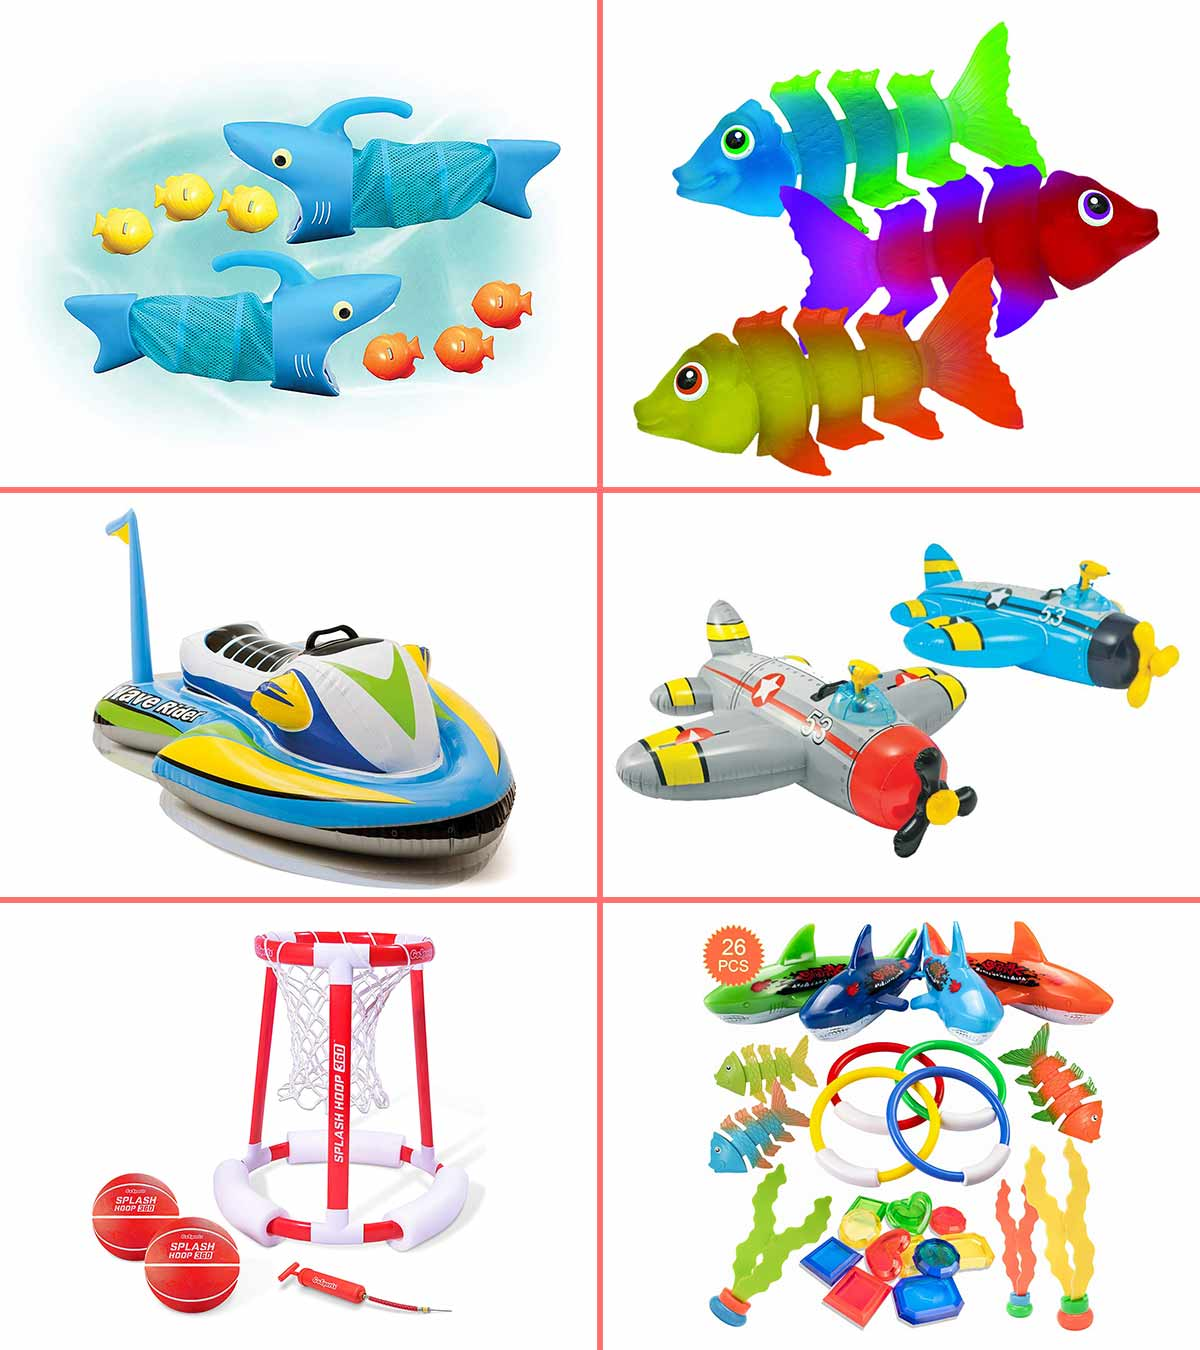 13 Best Pool Toys For Kids To Buy In 2020